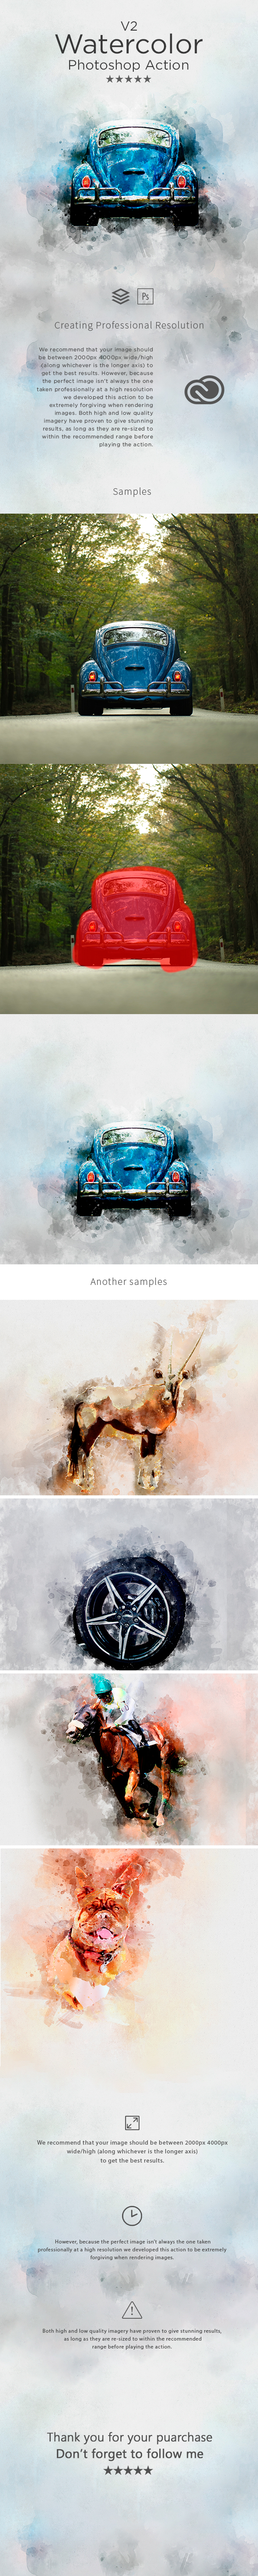 GraphicRiver Watercolor V.2 Photoshop Action 20682494